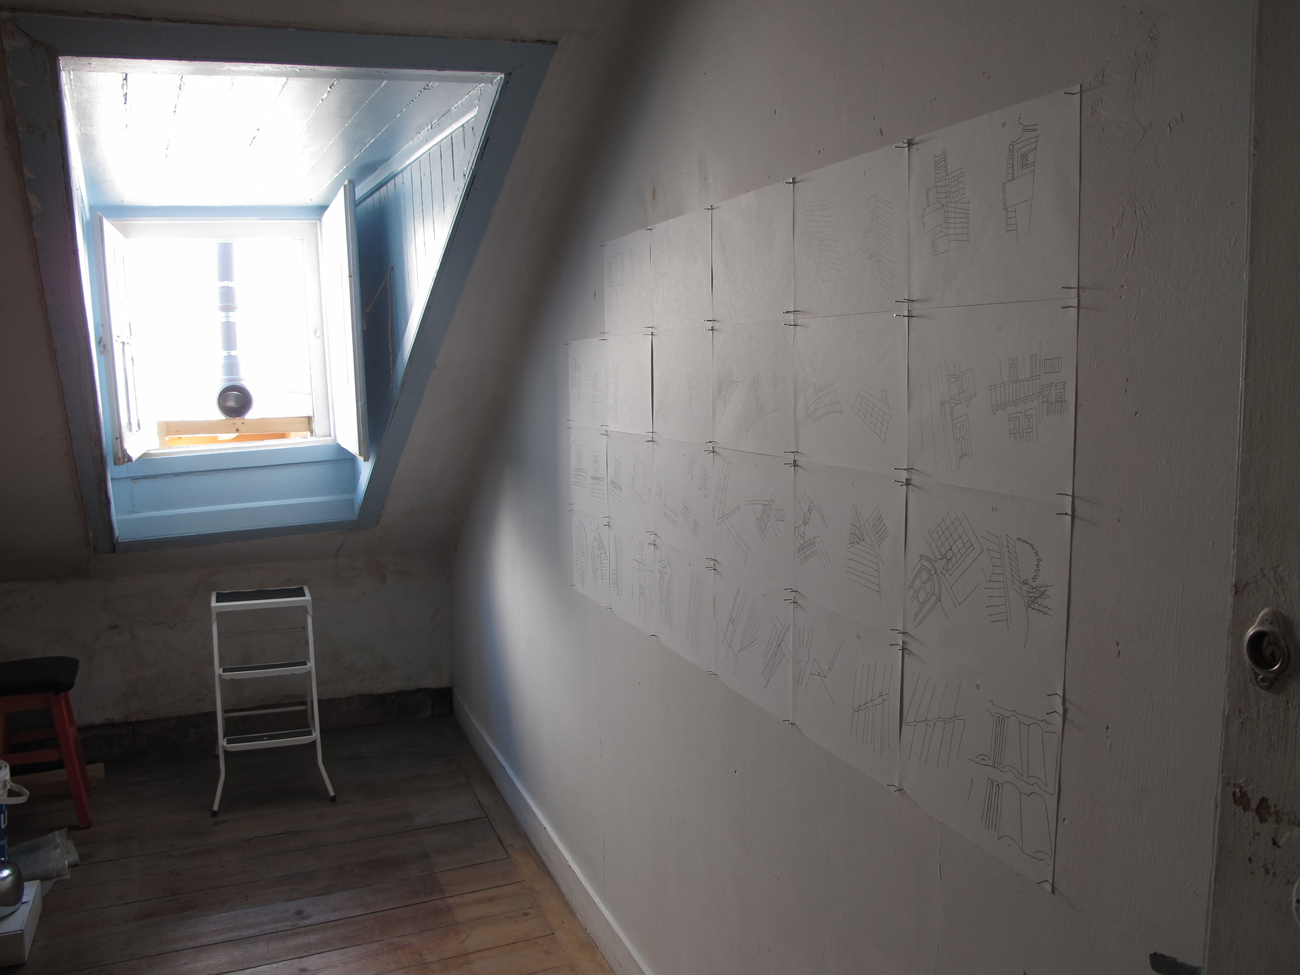 drawings on room wall